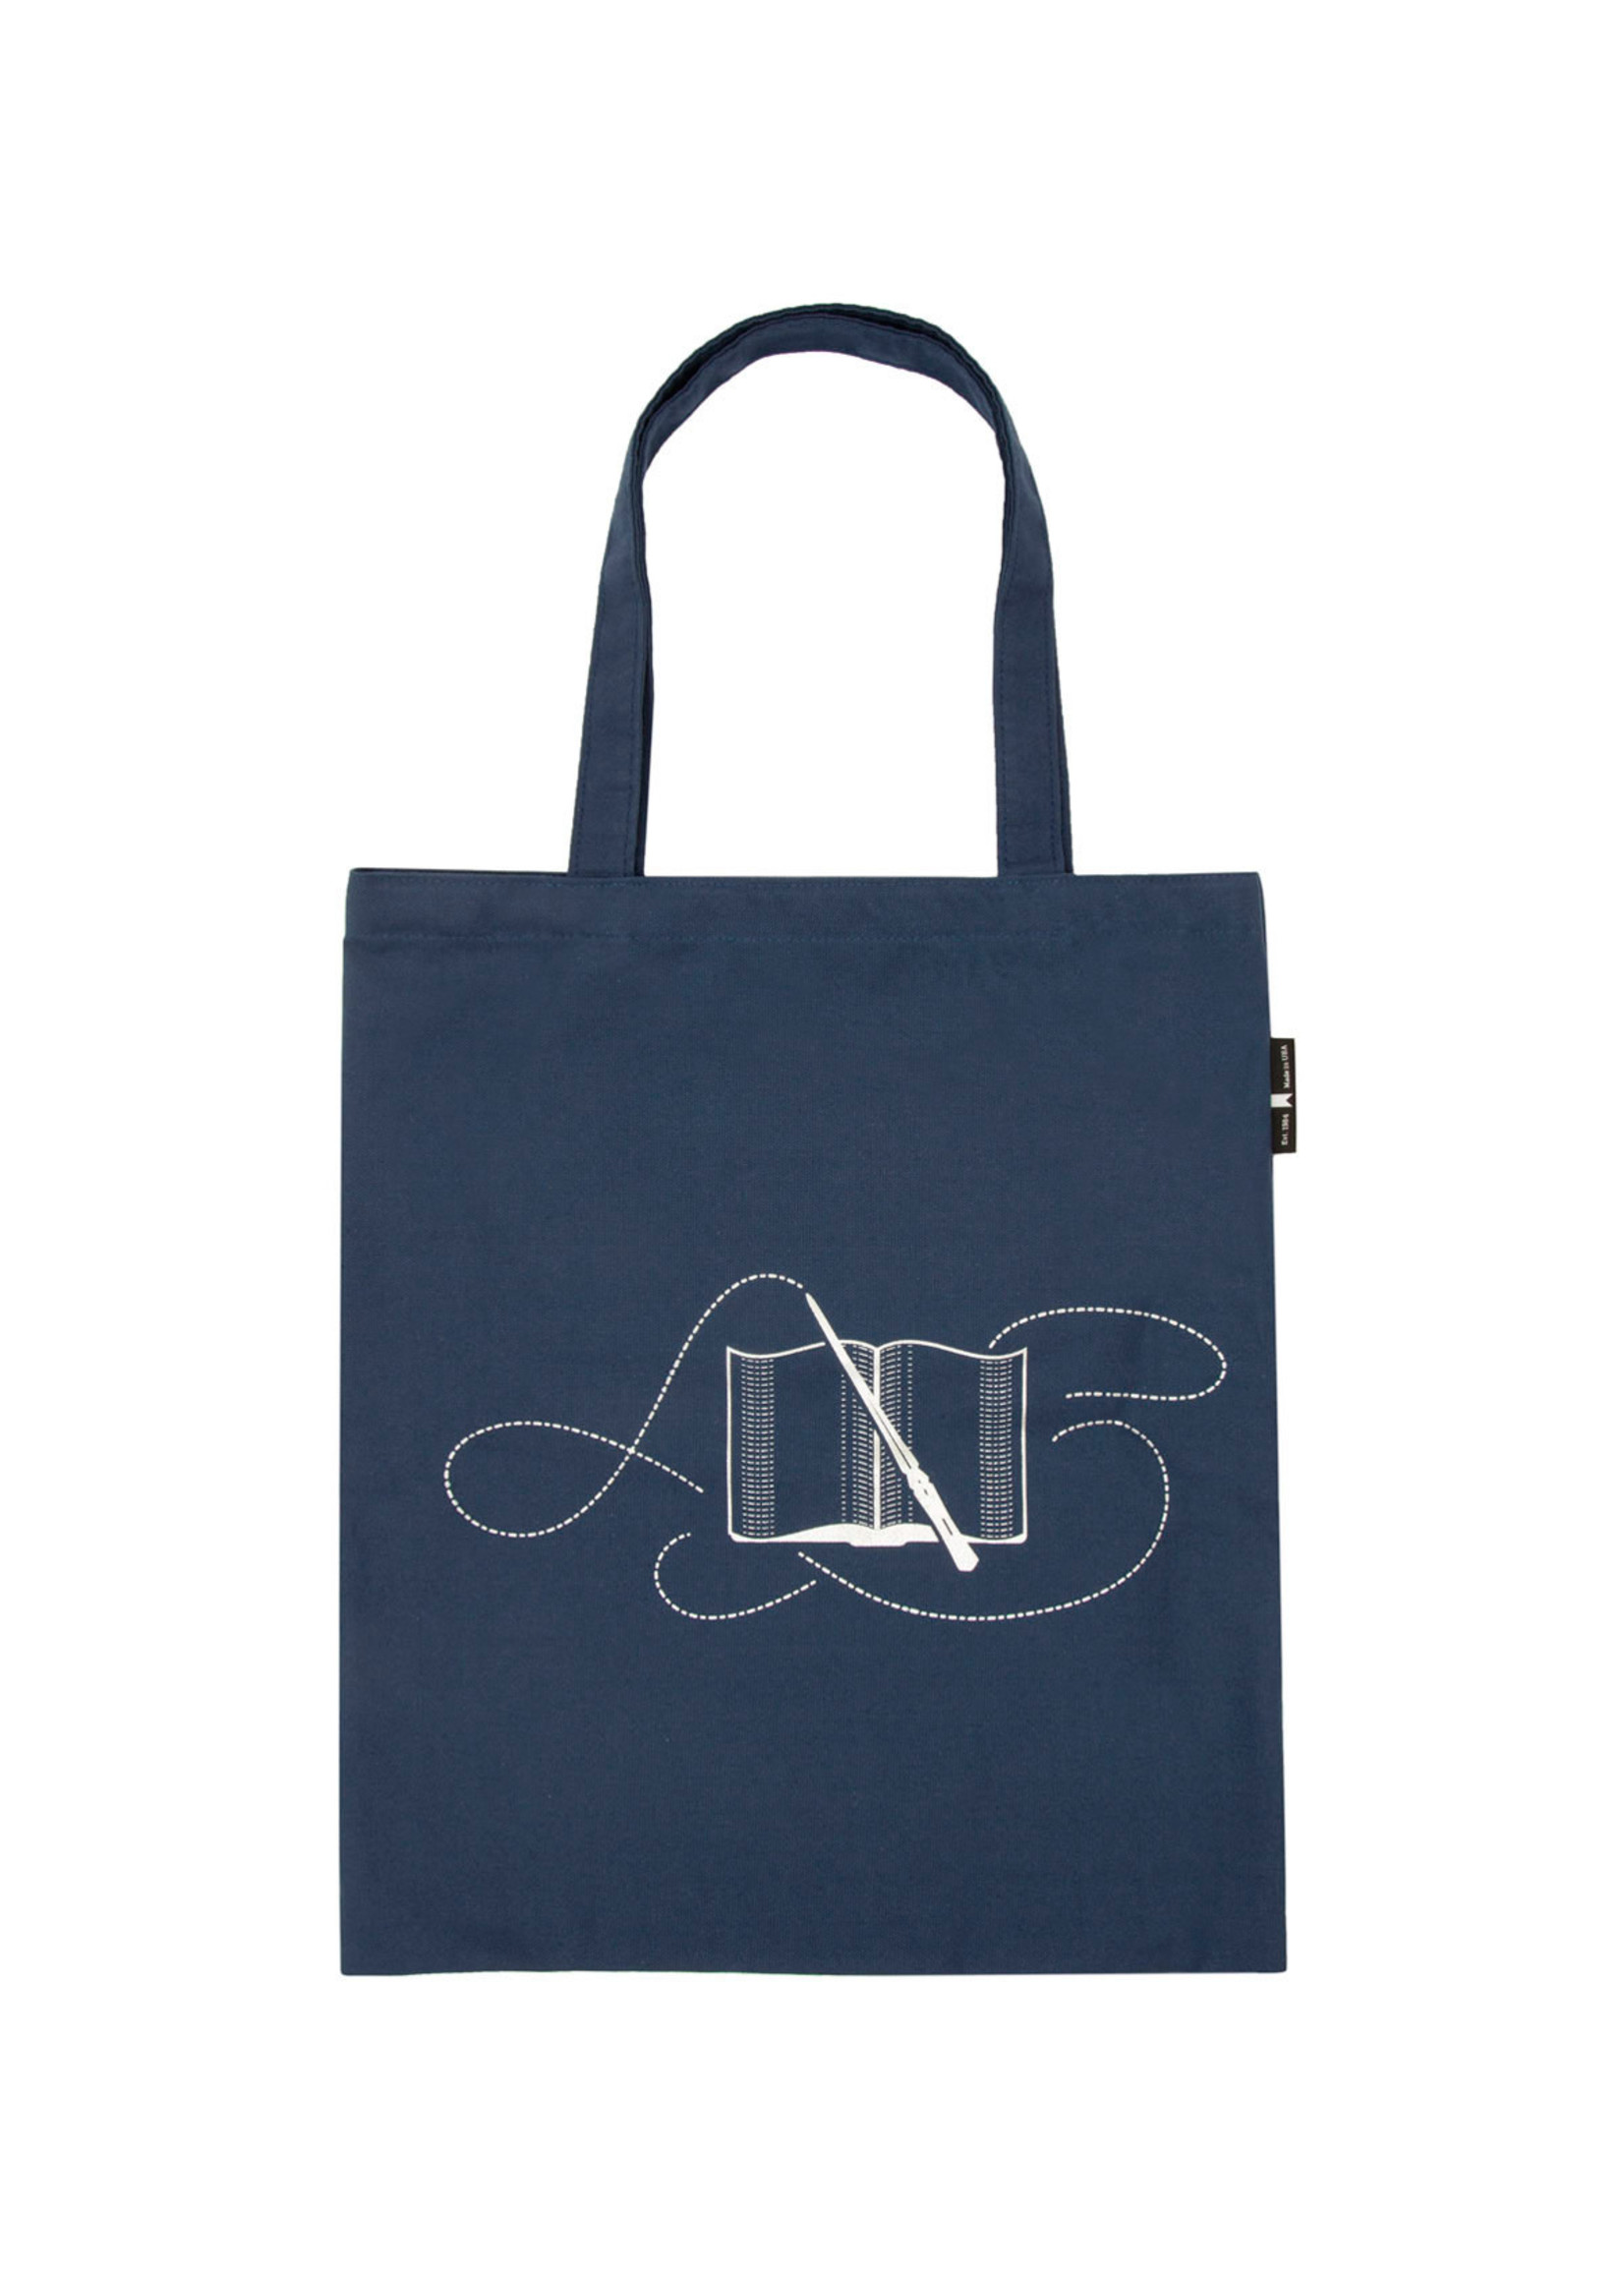 Out of Print Books Turn Muggles into Wizzards Tote